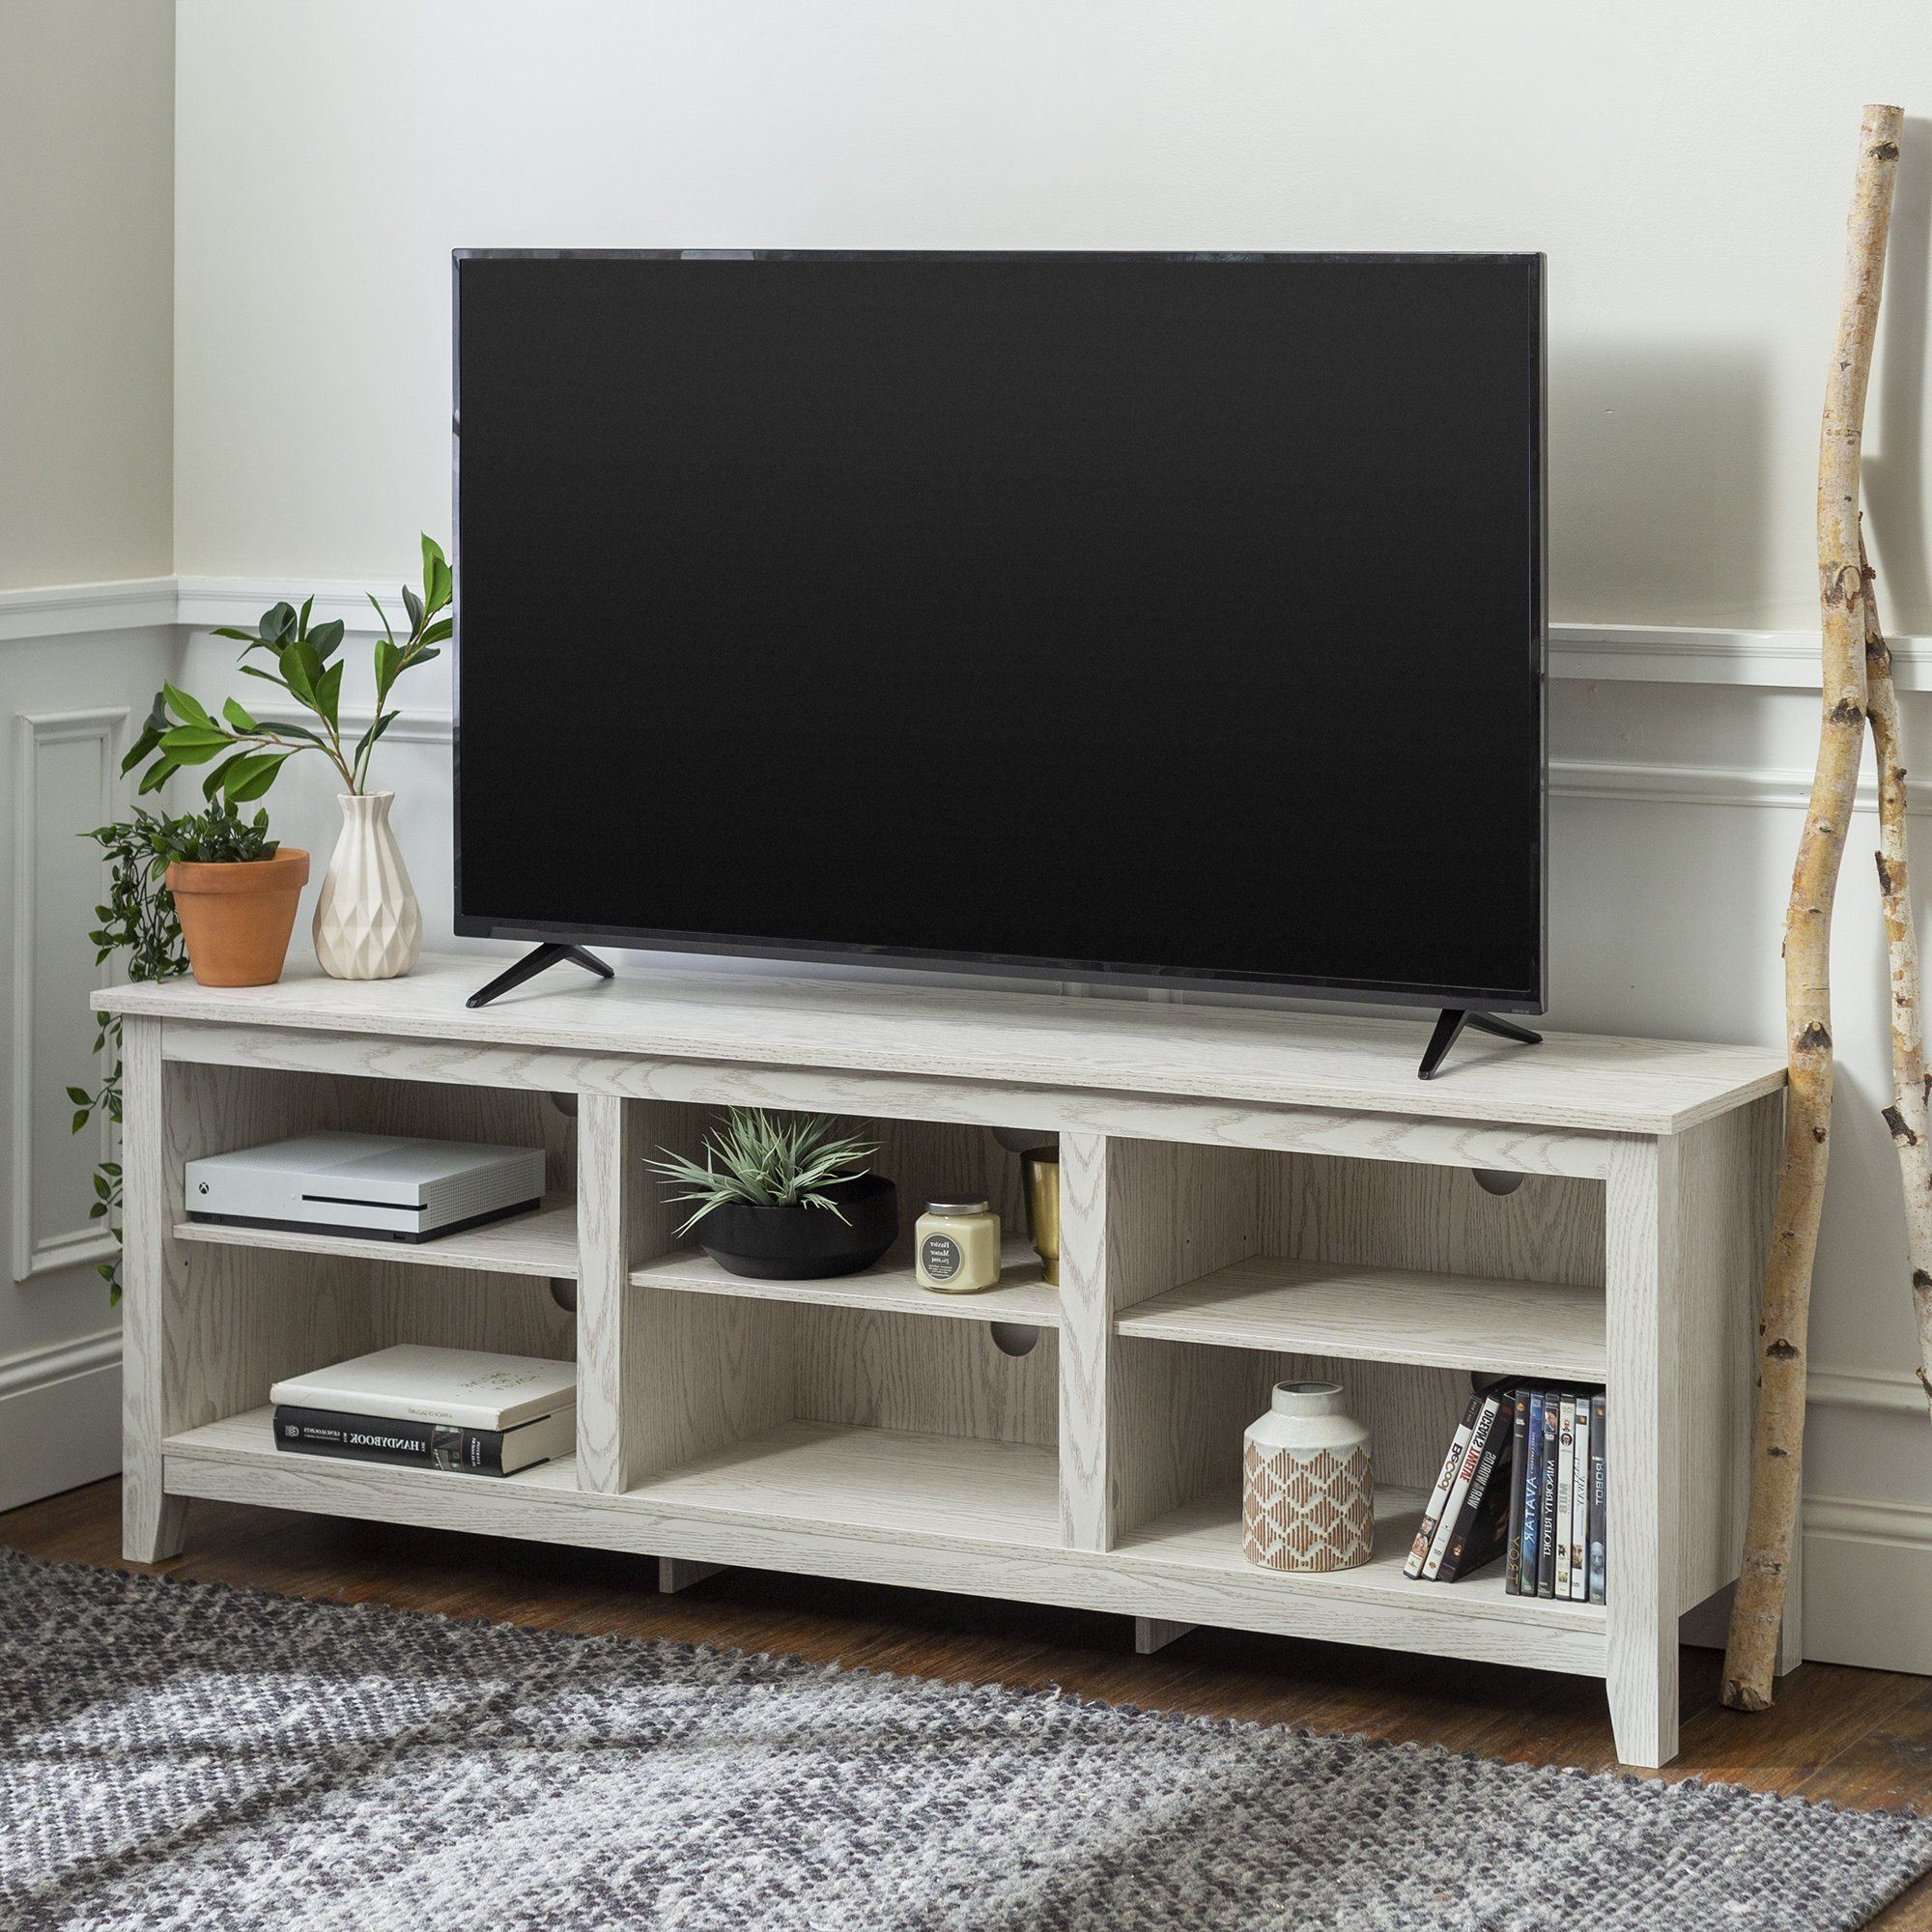 Woven Paths Open Storage Tv Stands With Multiple Finishes Intended For Recent Manor Park Wood Tv Media Storage Stand For Tvs Up To  (View 4 of 10)